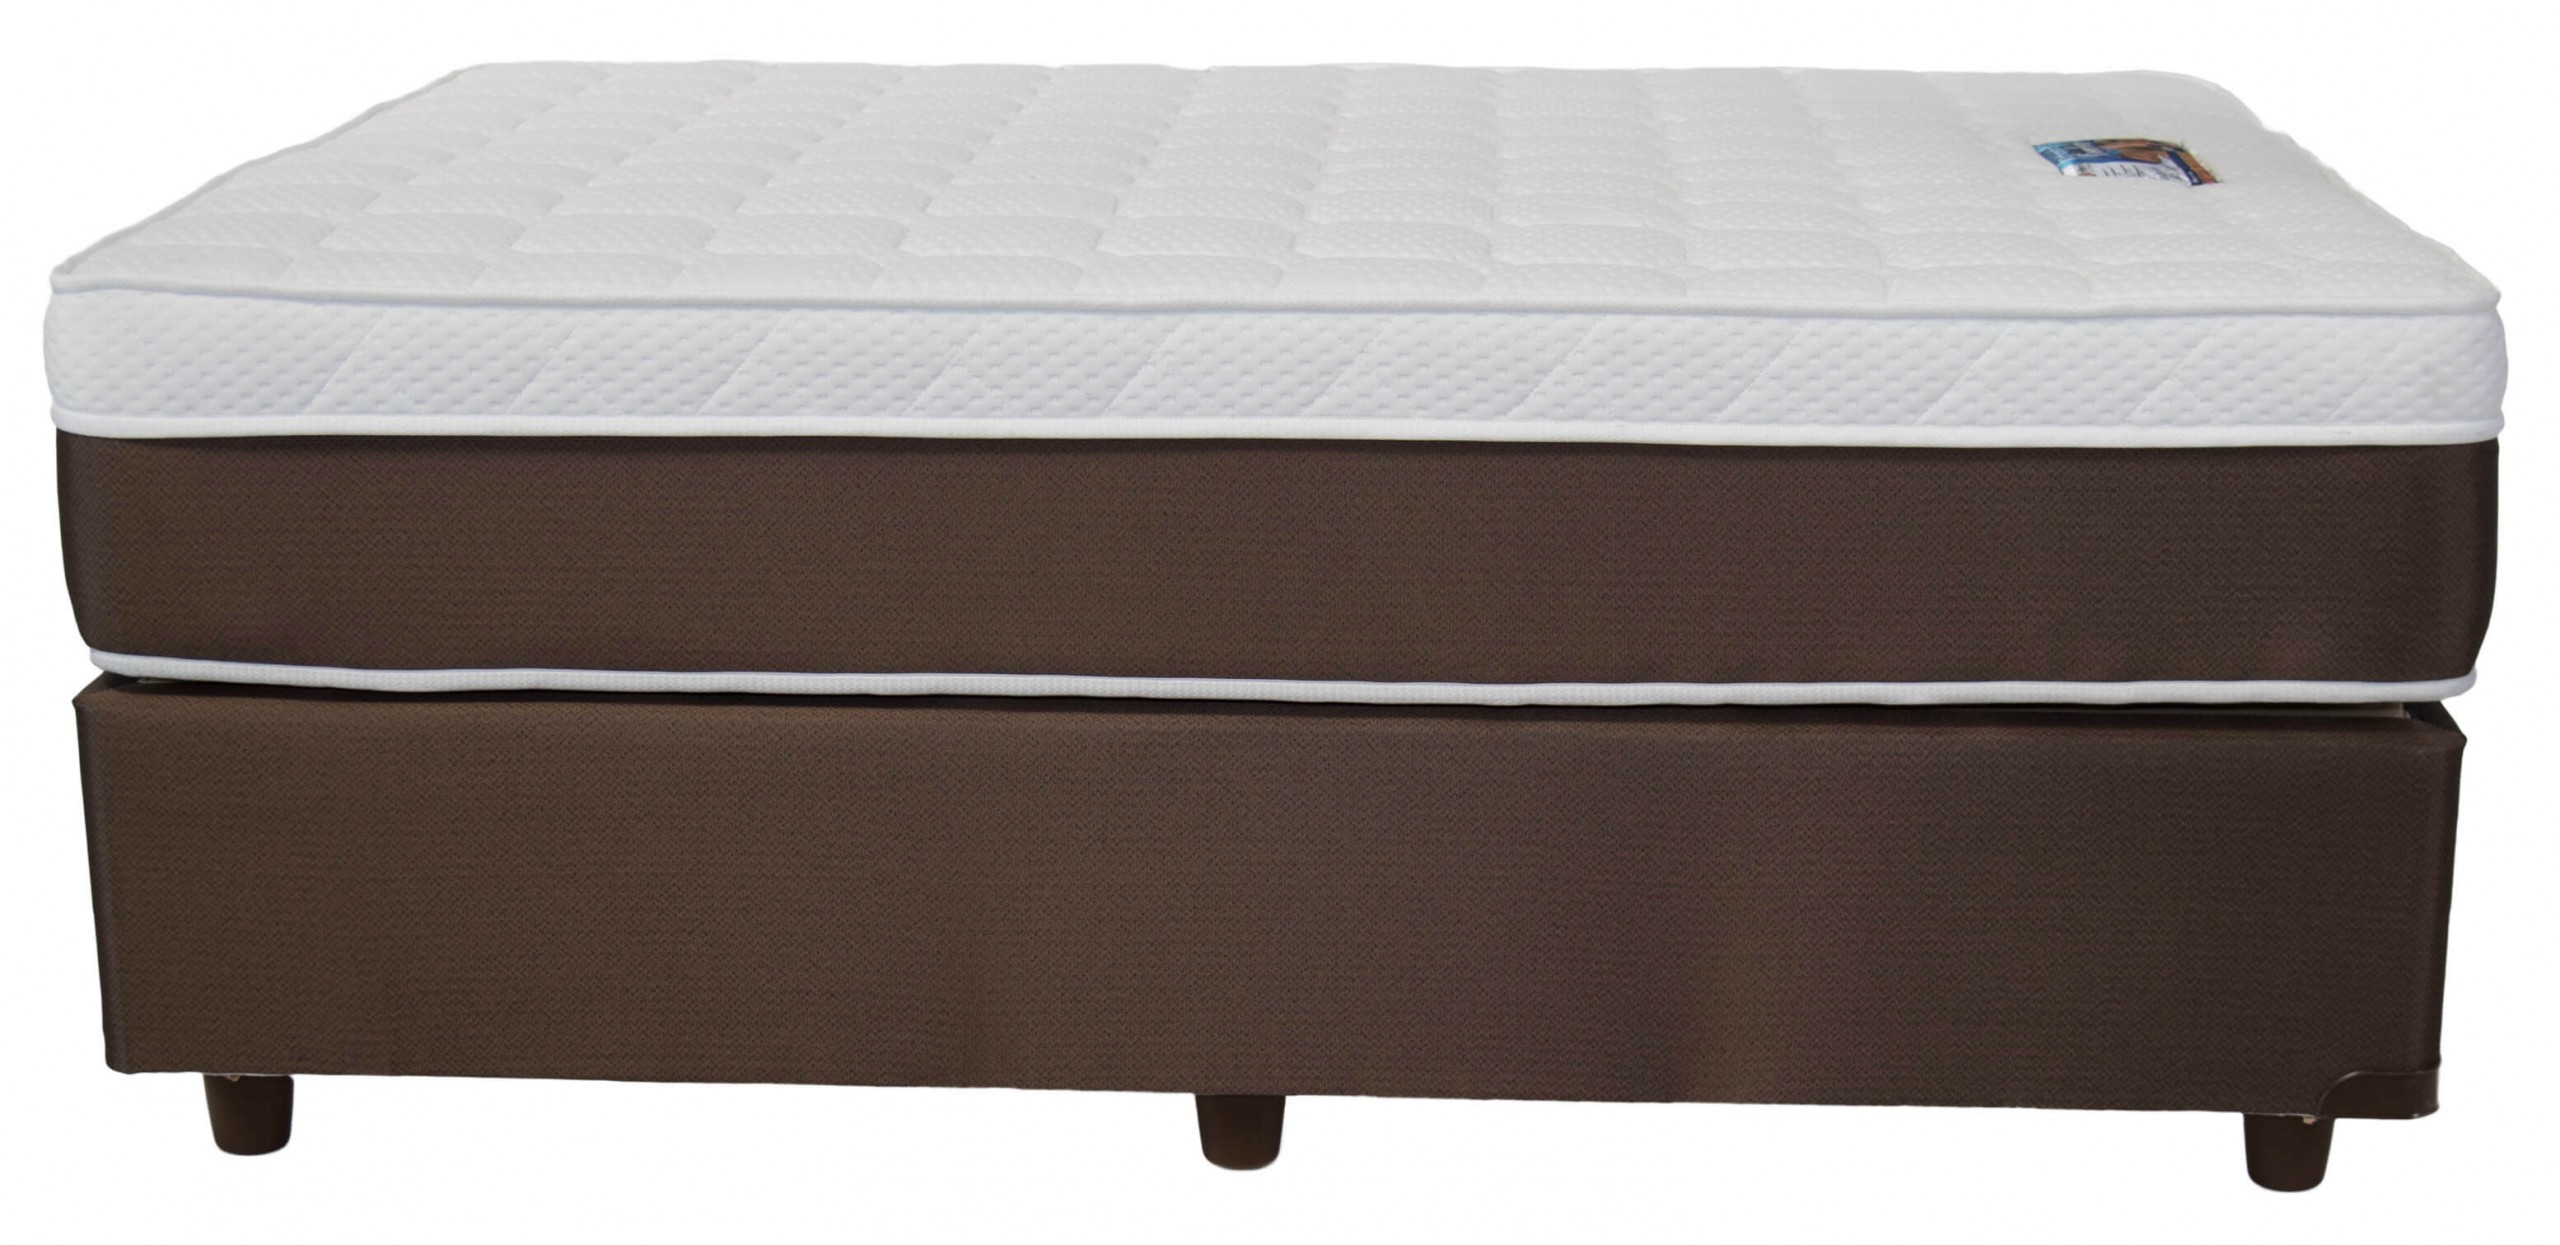 Urban-empire-affordable-furniture-orthopedic-mattress-and-base-set-for-sale-in-johannesburg-online-